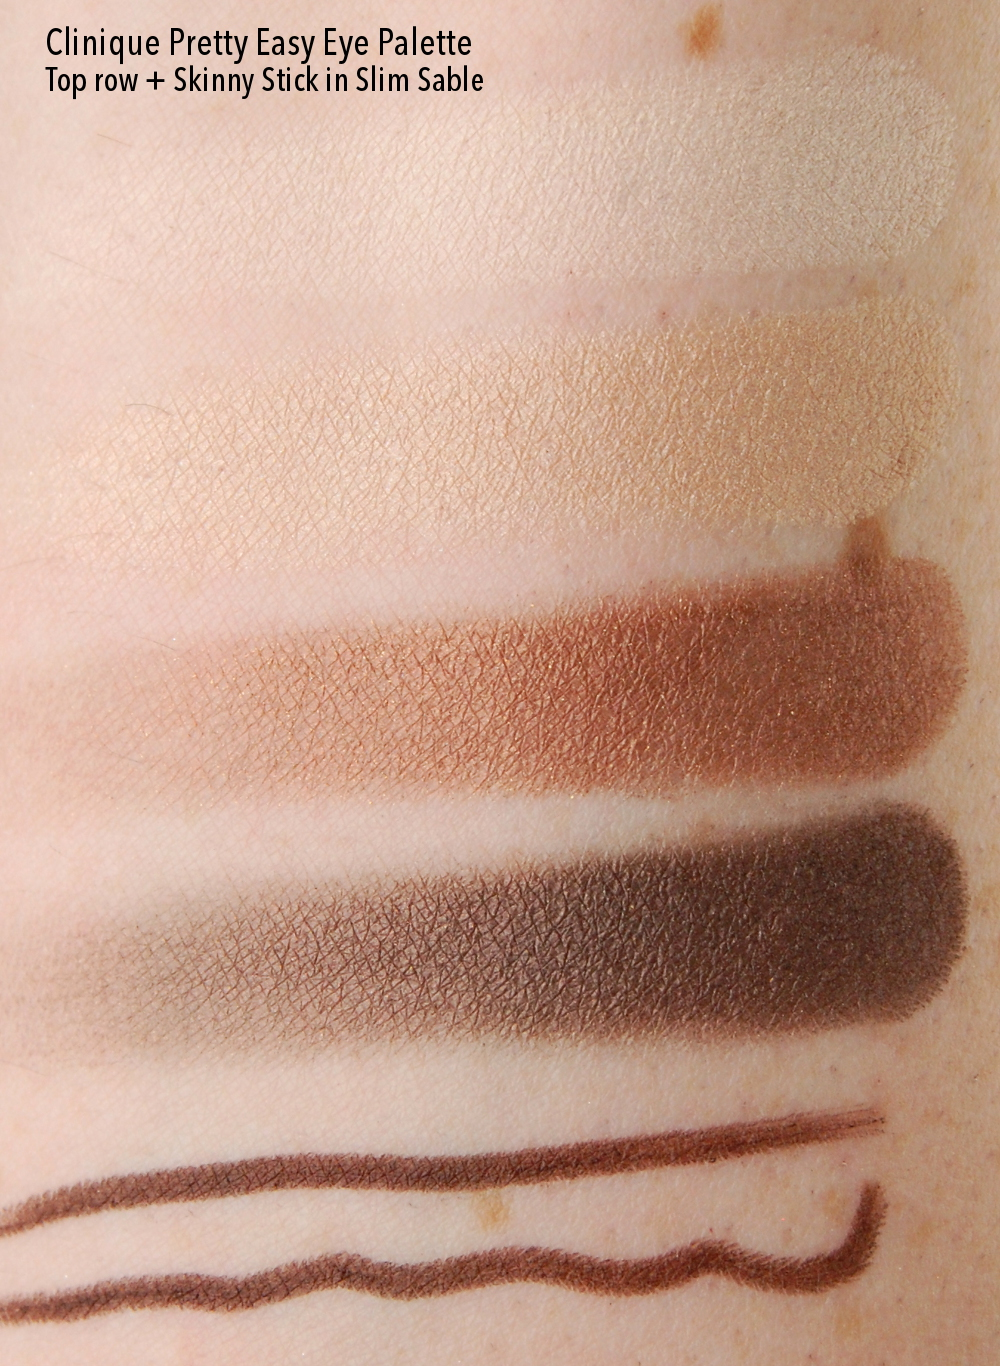 Clinique Pretty Easy Eye Palette top row Skinny Stick Slim Sable swatch